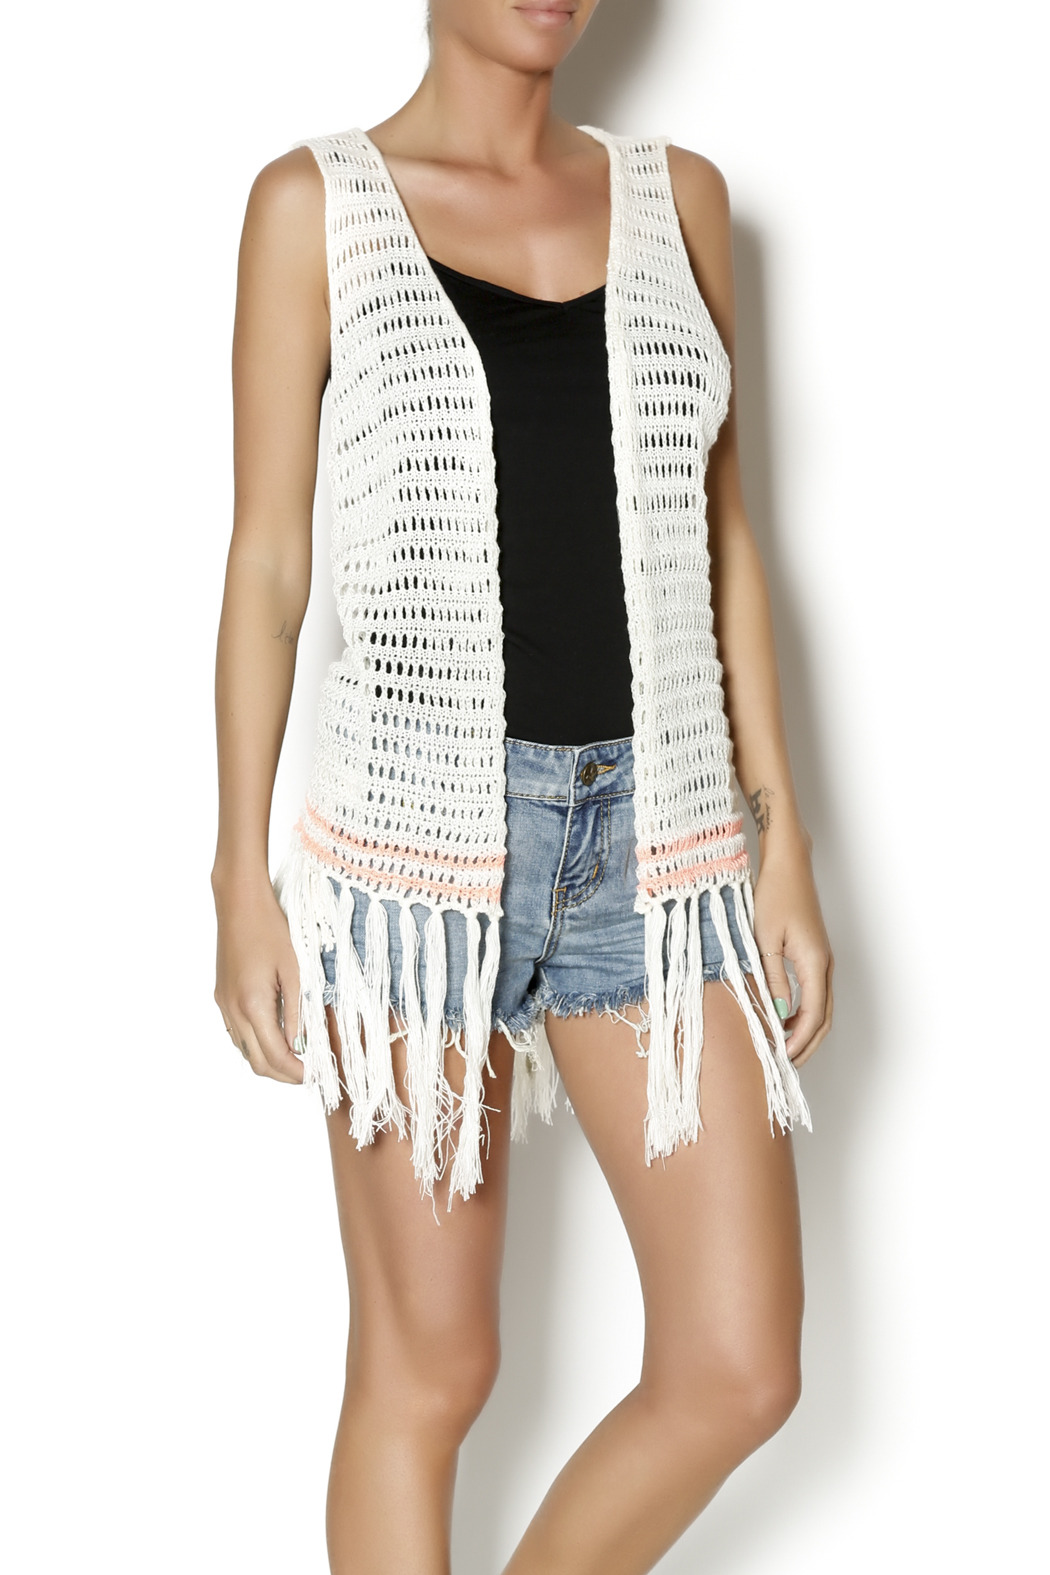 Blu Pepper Fringed Vest Cardigan from Asheville by Union — Shoptiques